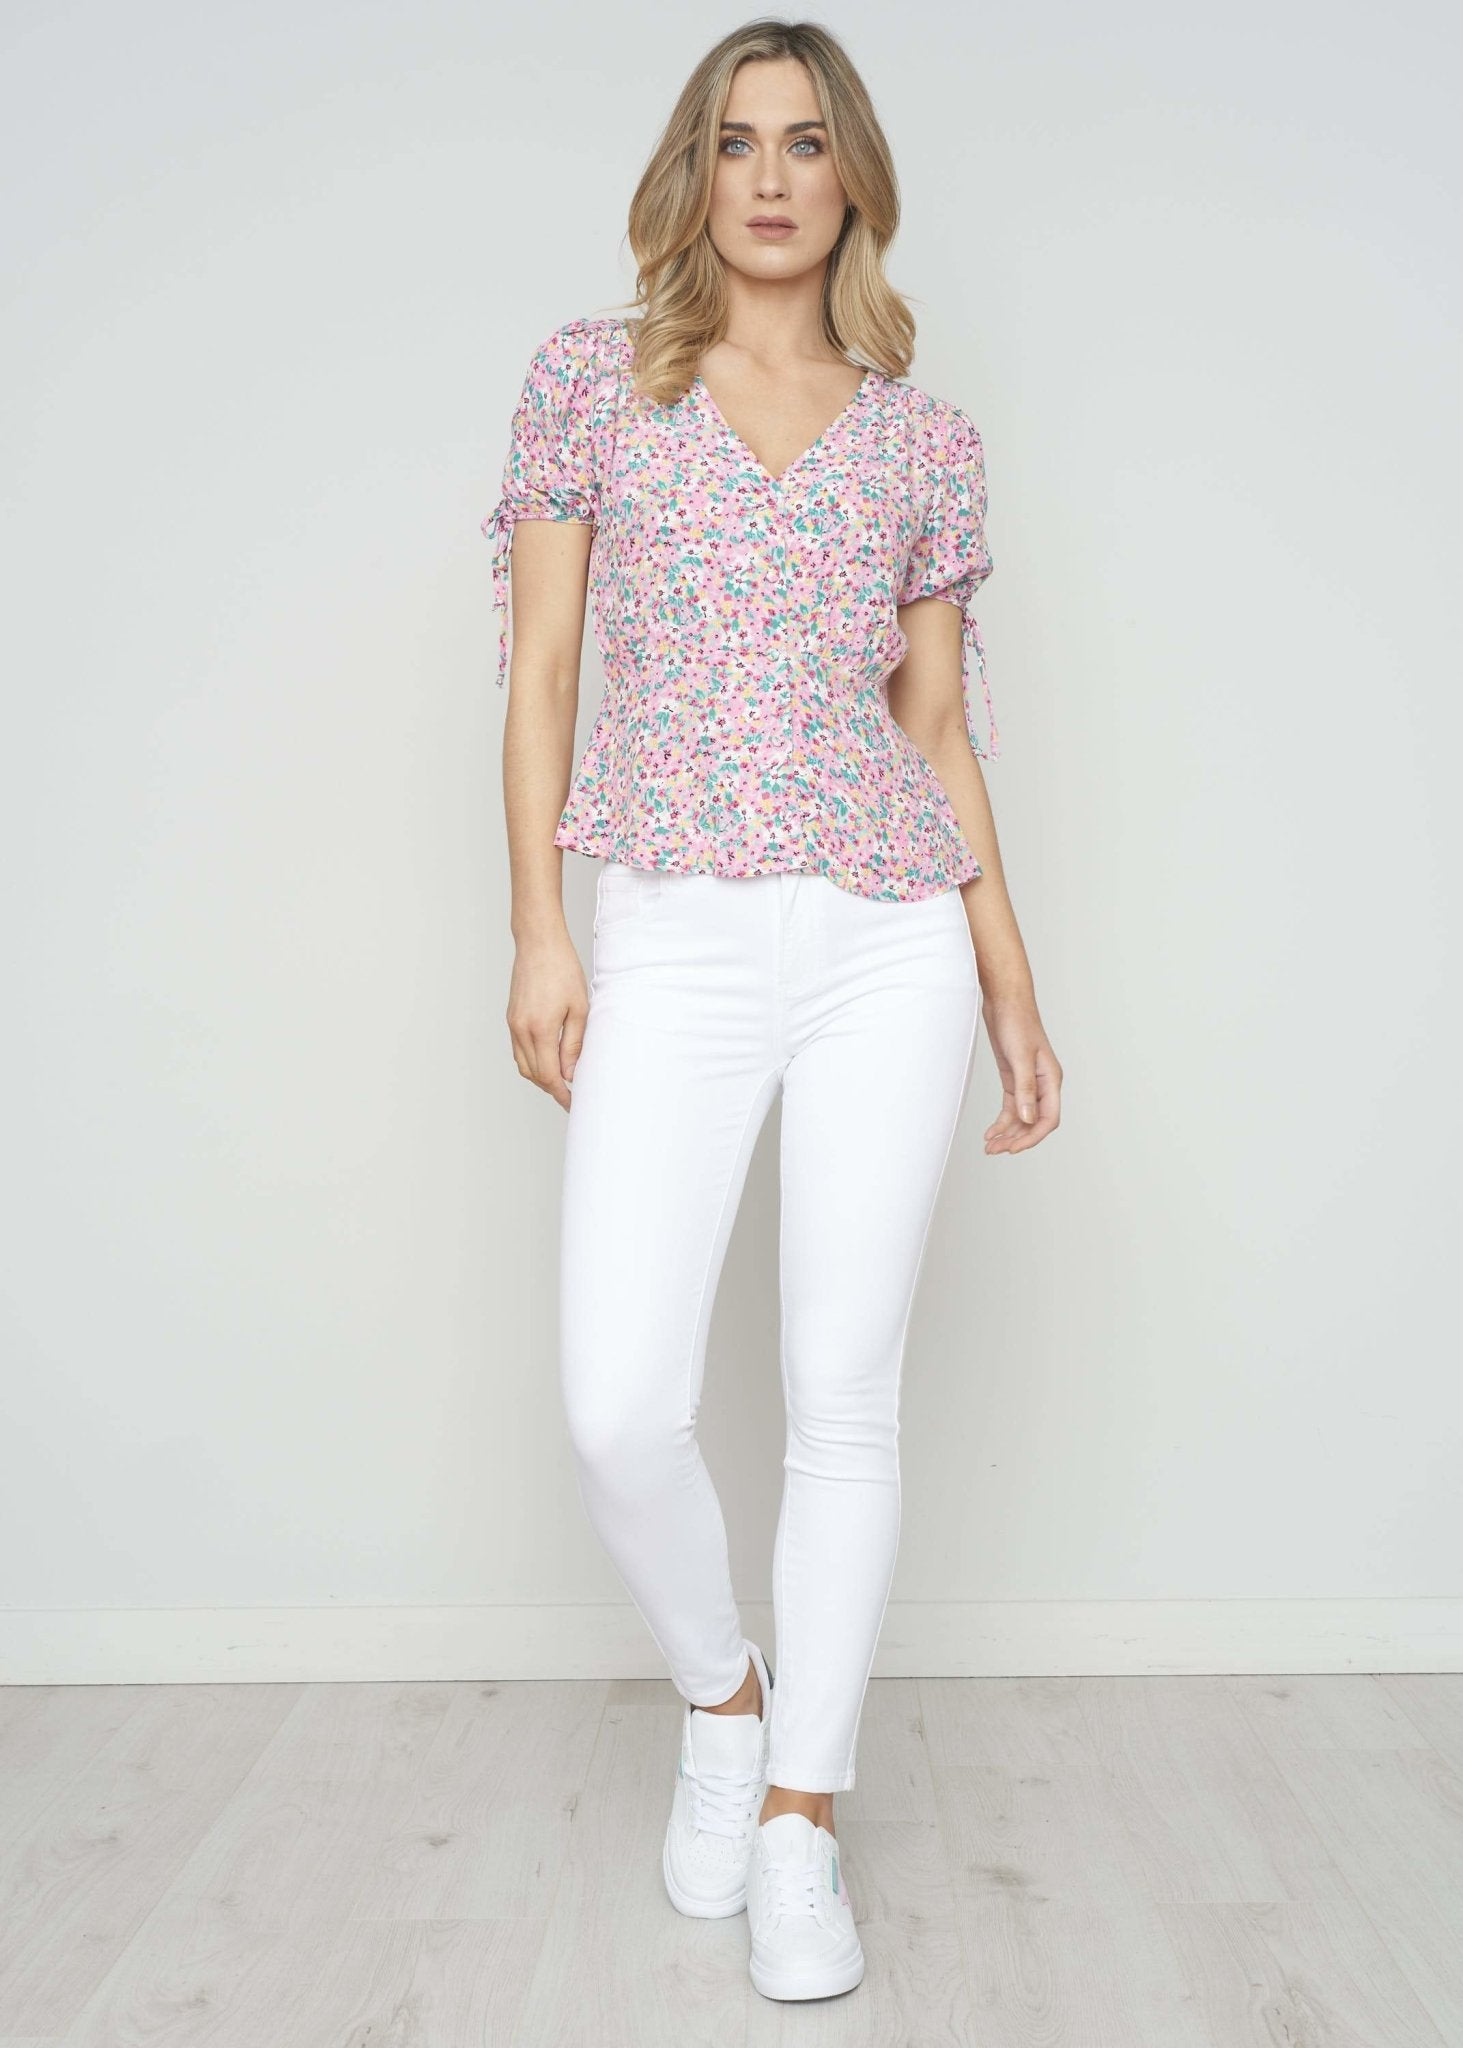 Danni Floral Blouse In Pink Mix - The Walk in Wardrobe